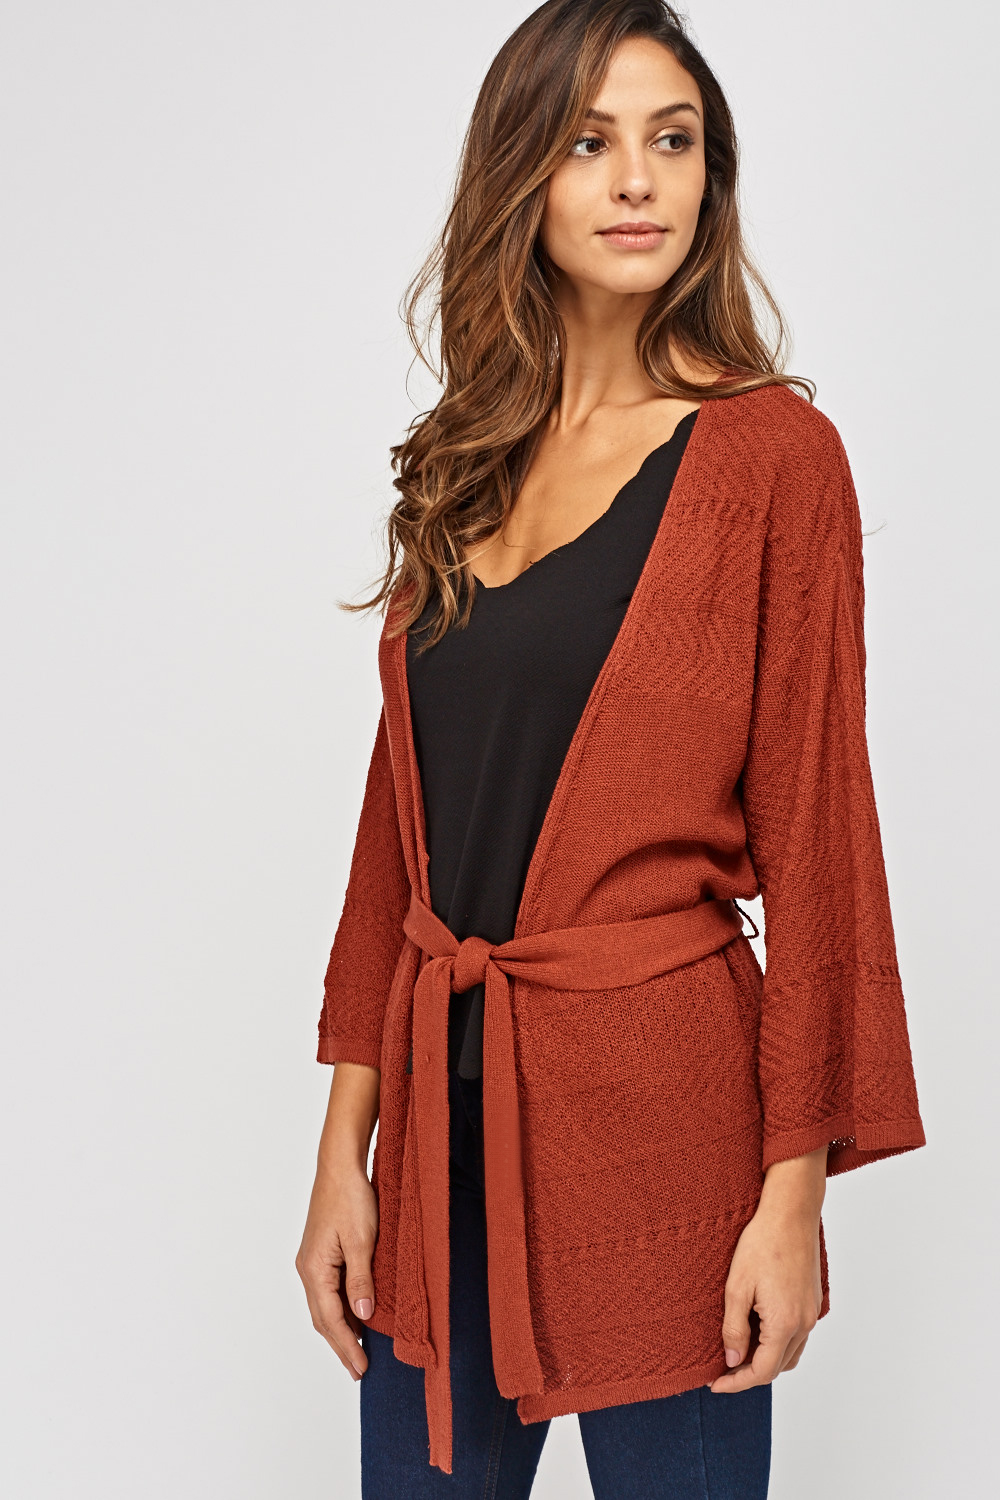 628593784e Loose Knit Tie Up Cardigan - Just £5